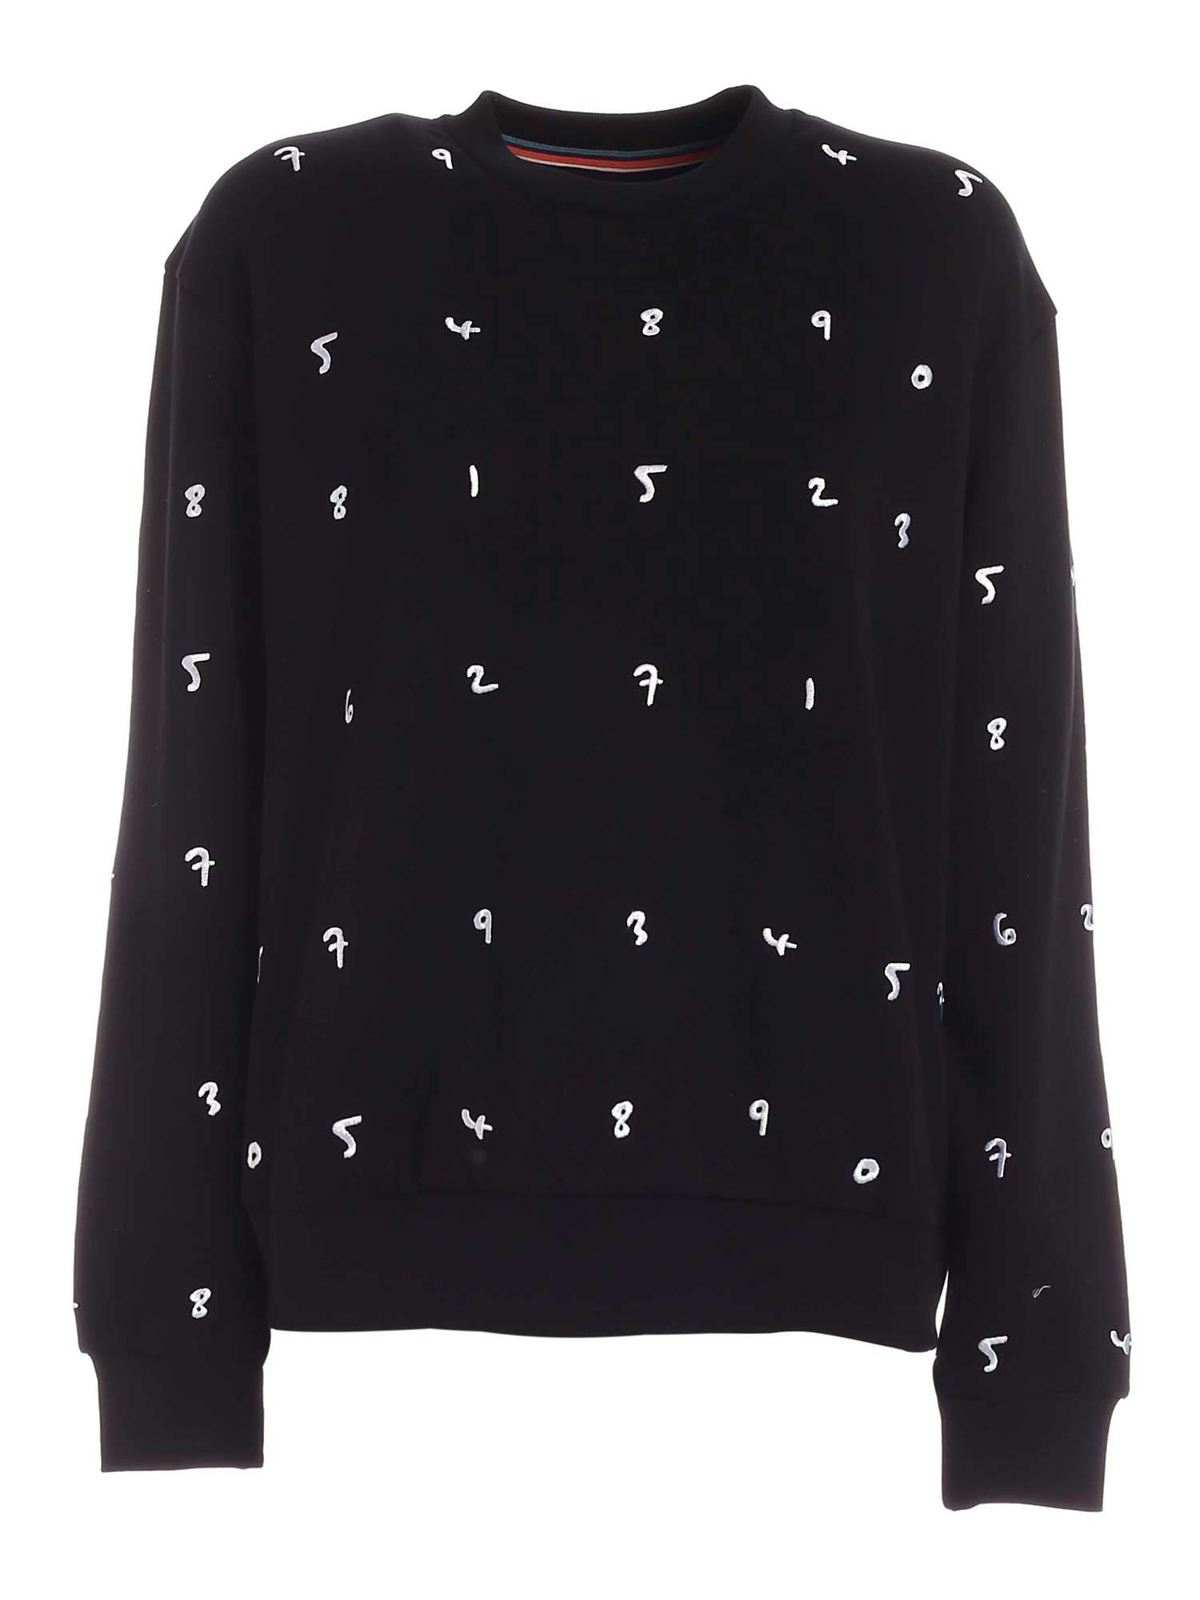 Paul Smith ALL-OVER WHITE EMBROIDERY SWEATSHIRT IN BLACK